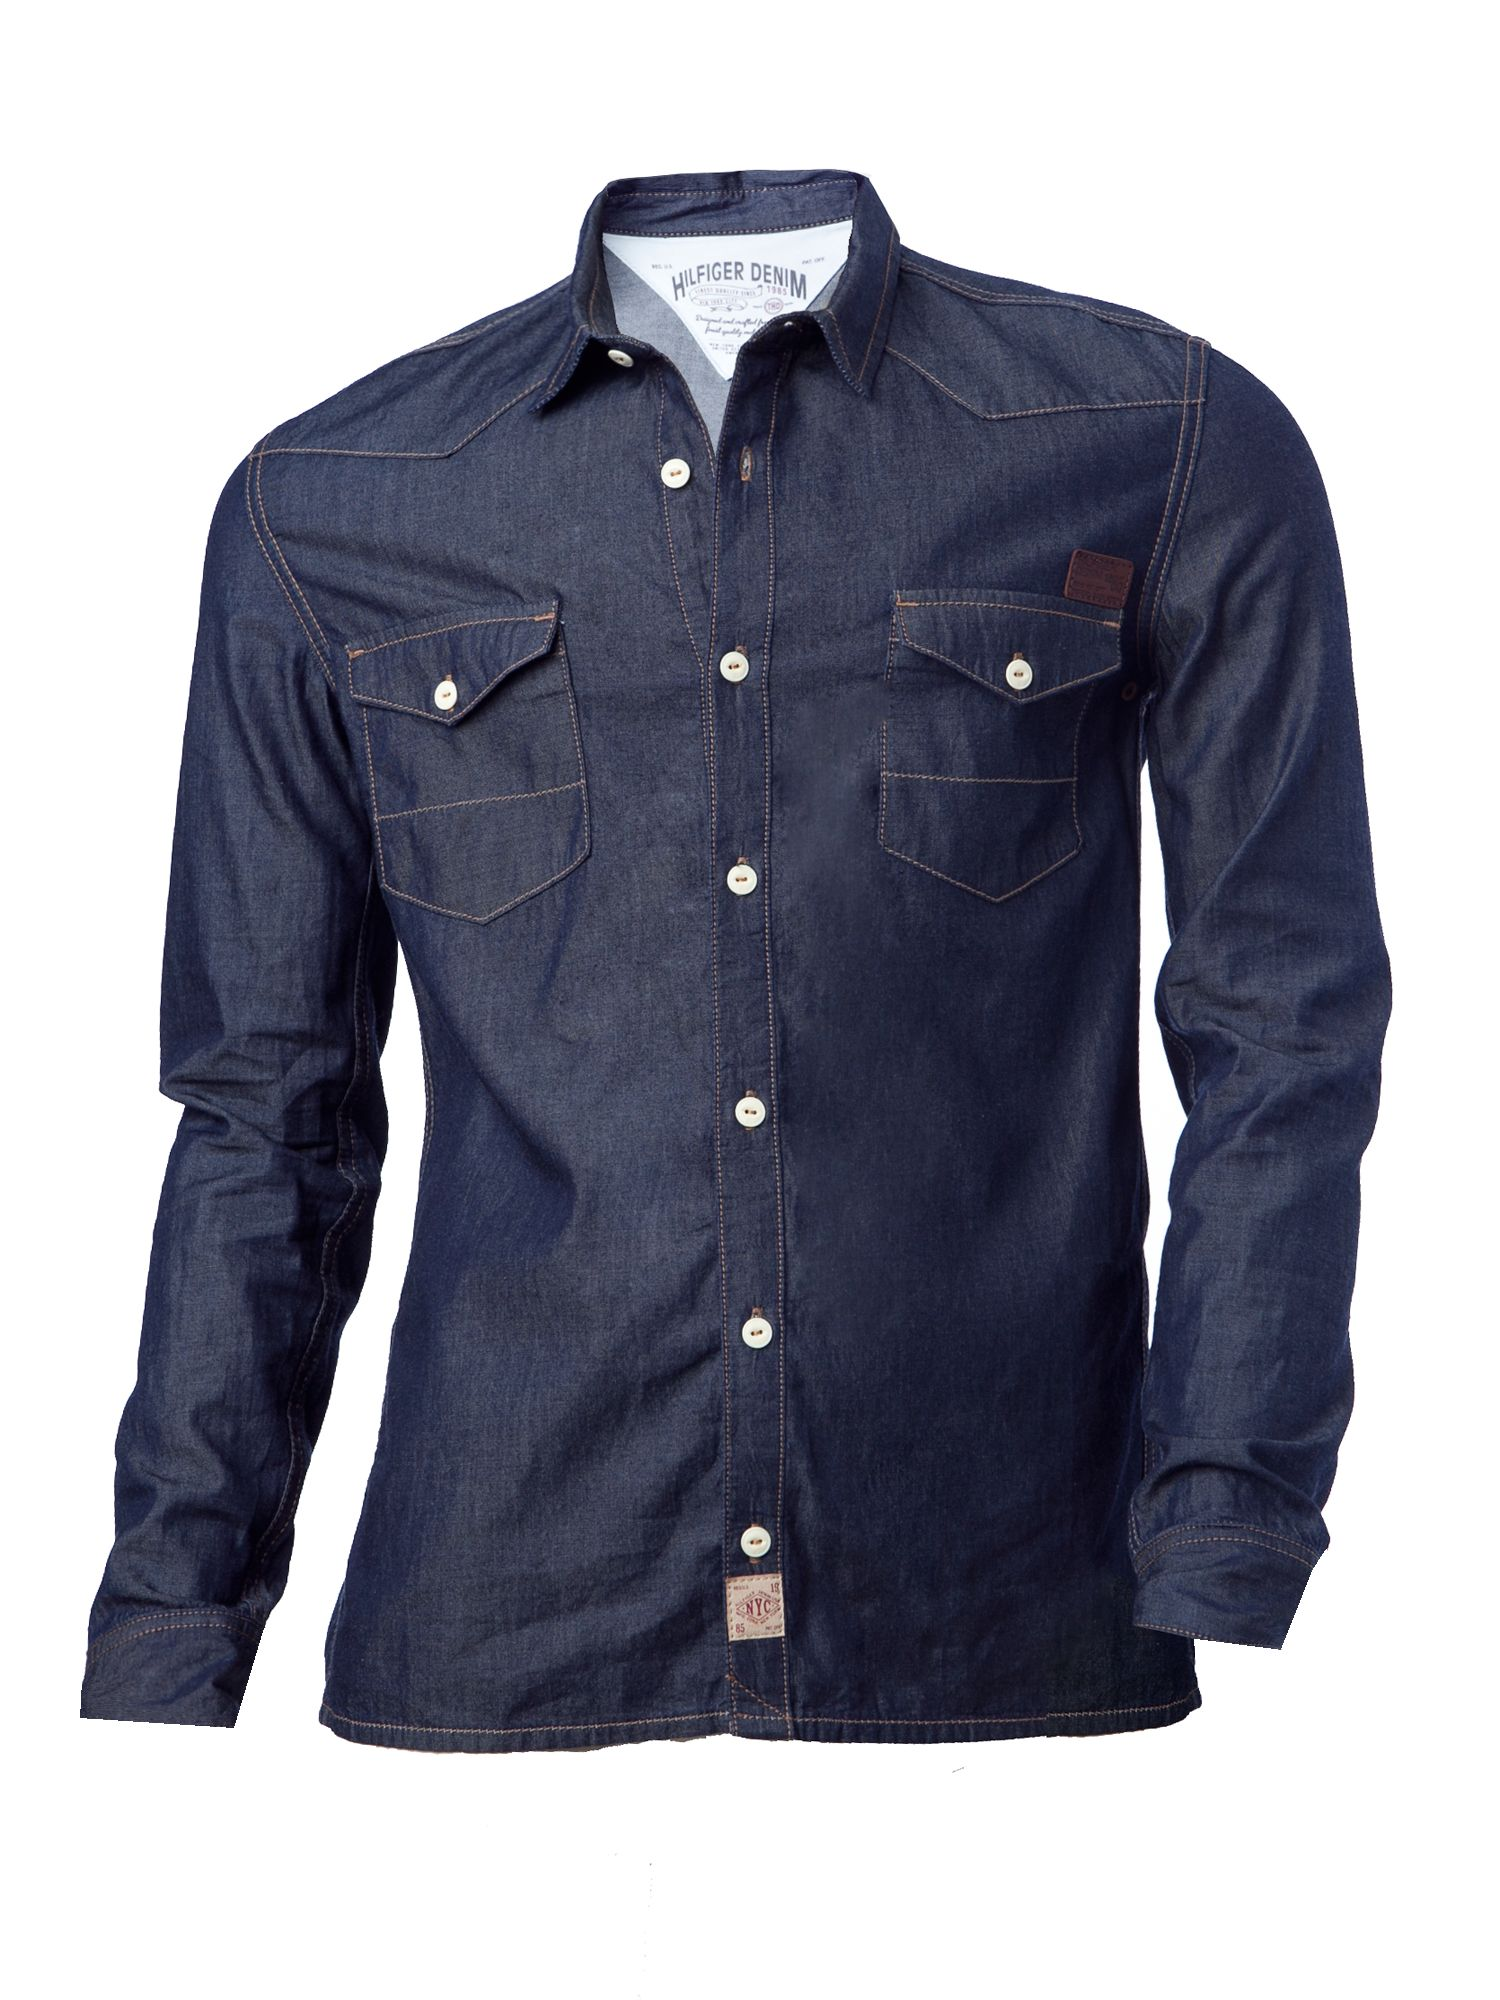 Plaid Long Sleeve Shirts For Men